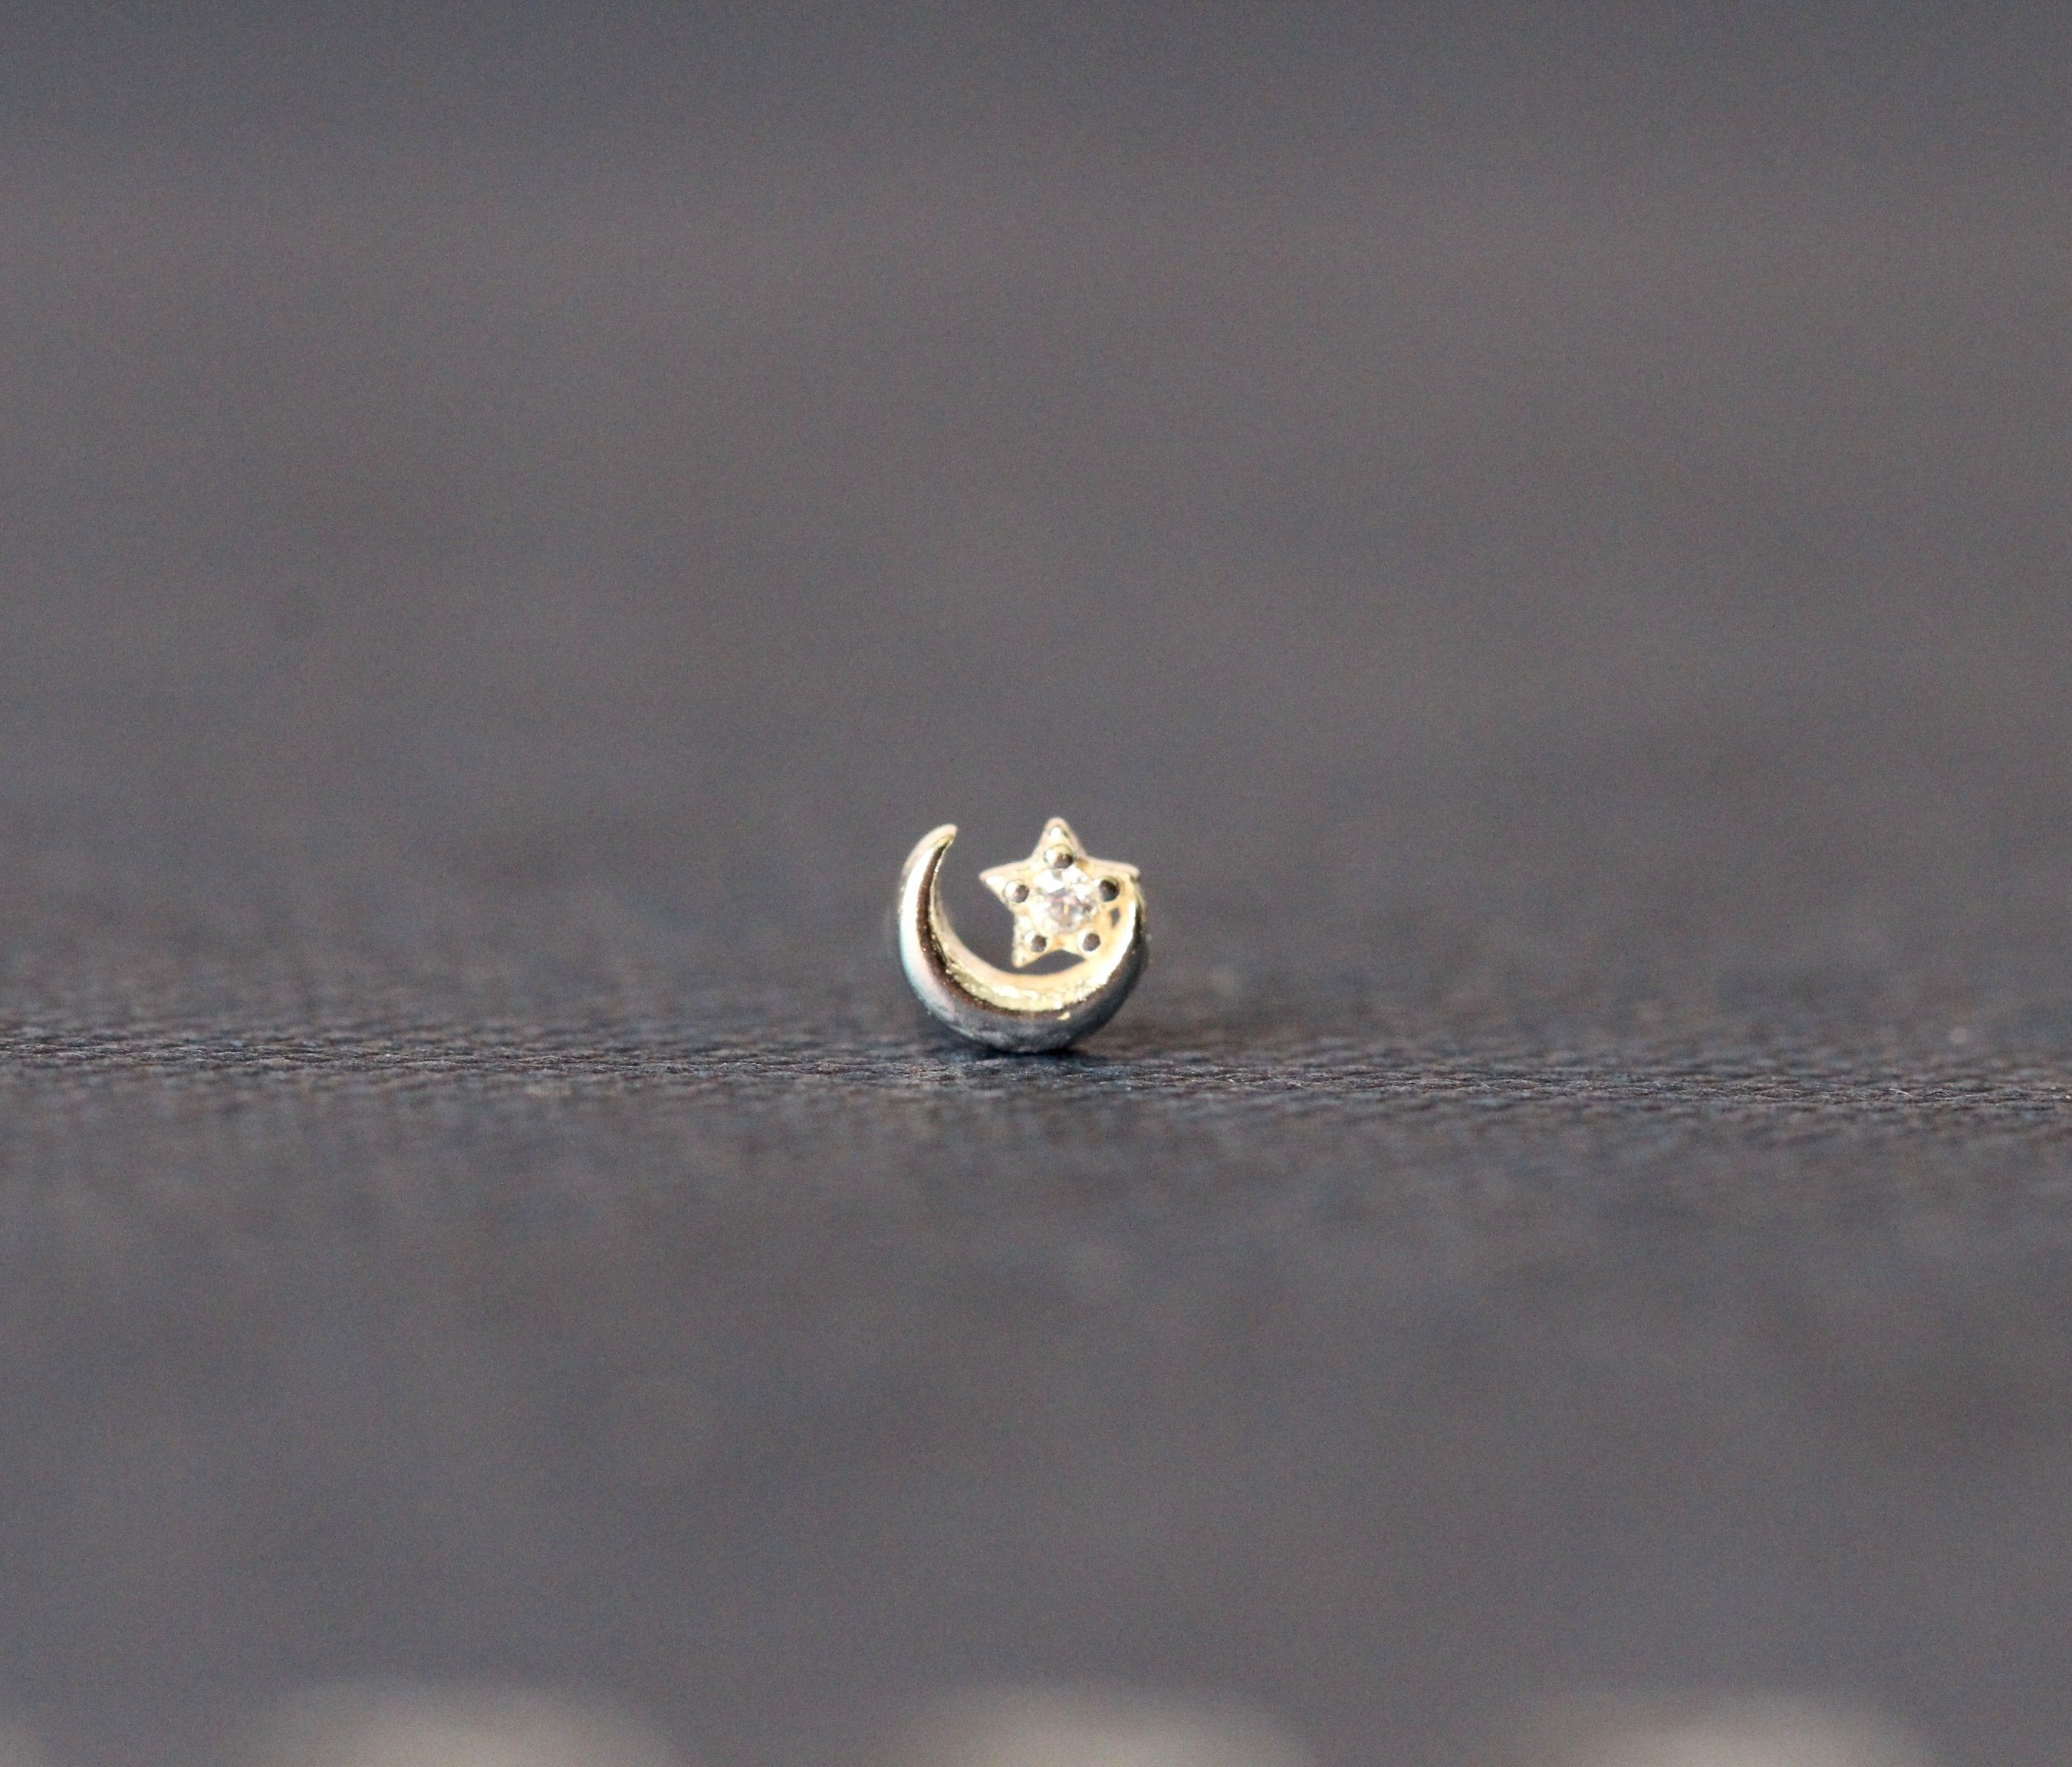 Ball Cone or Flat top 1mm NOSE STUD PIERCING in Stainless Steel or Titanium